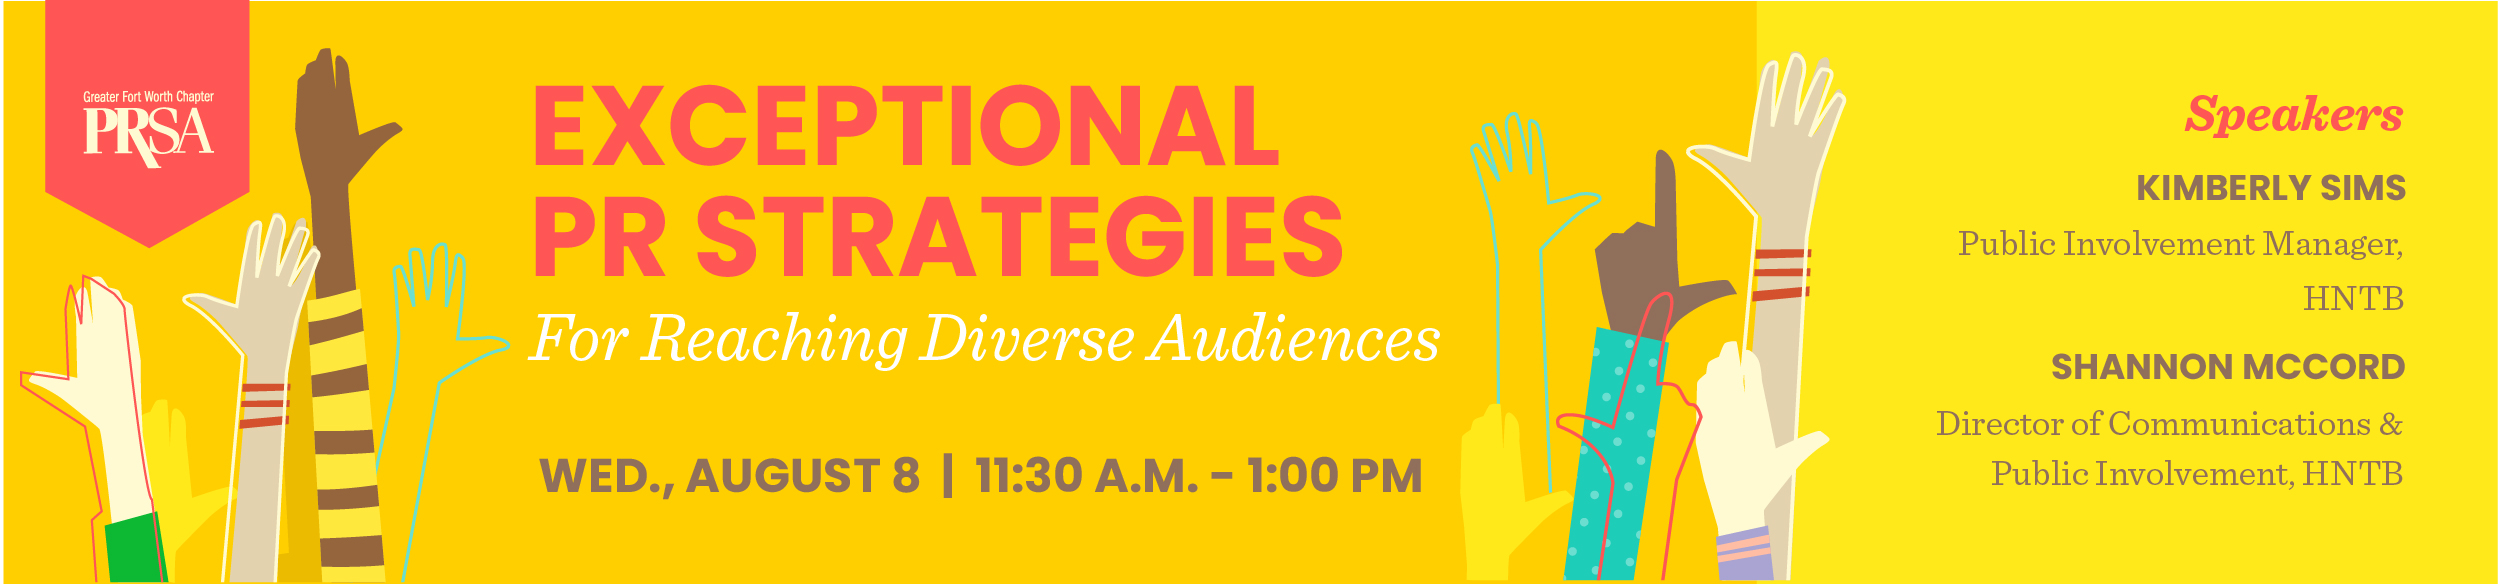 Exceptional PR Strategies for Reaching Diverse Audiences